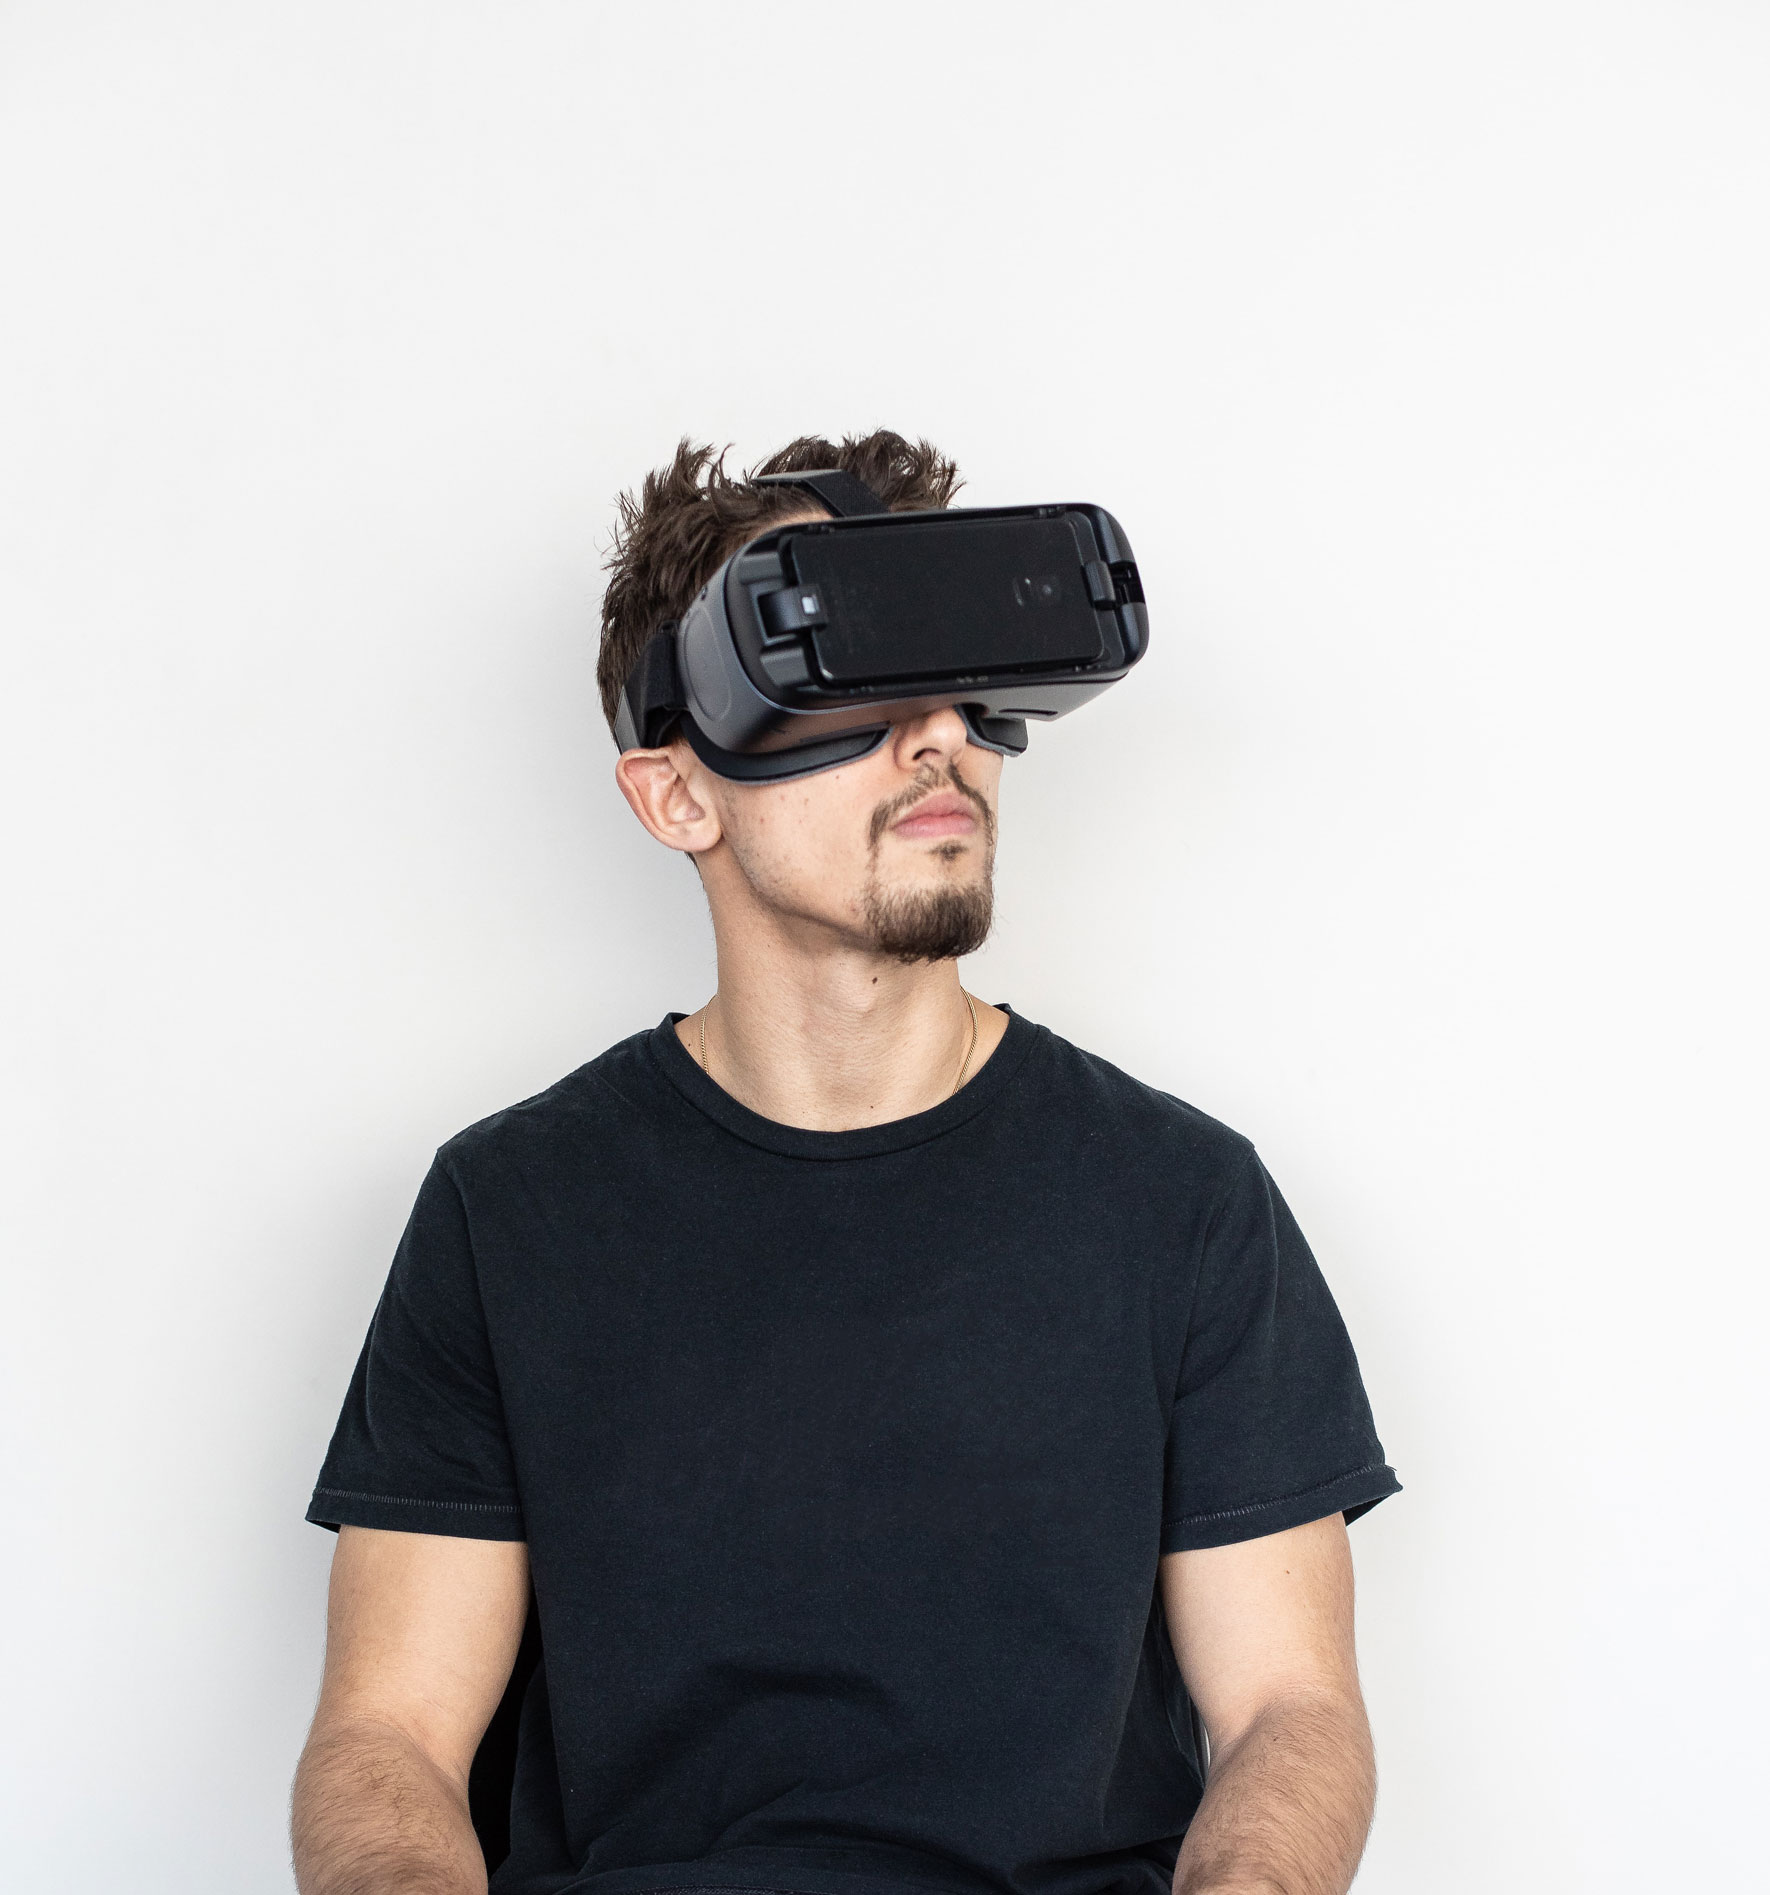 How Virtual Reality is Revolutionizing Recruitment